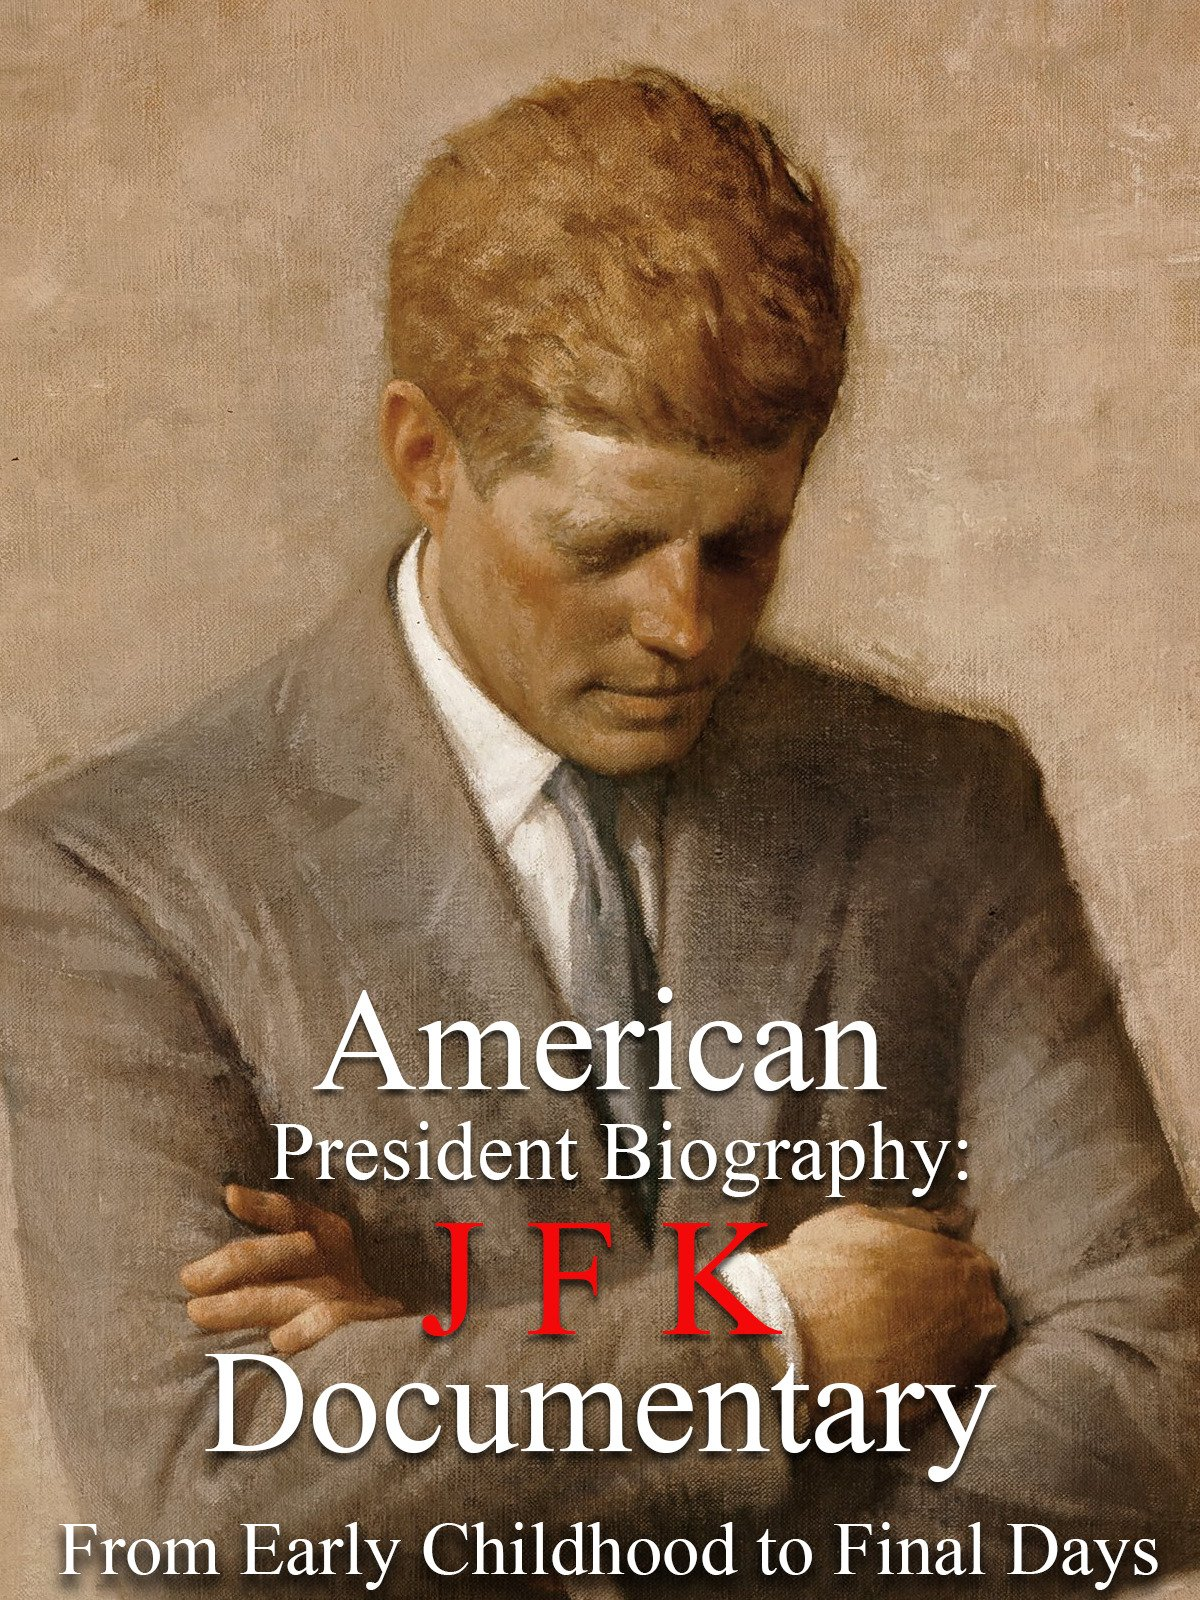 American President Biography: JFK Documentary From Early Childhood to Final Days